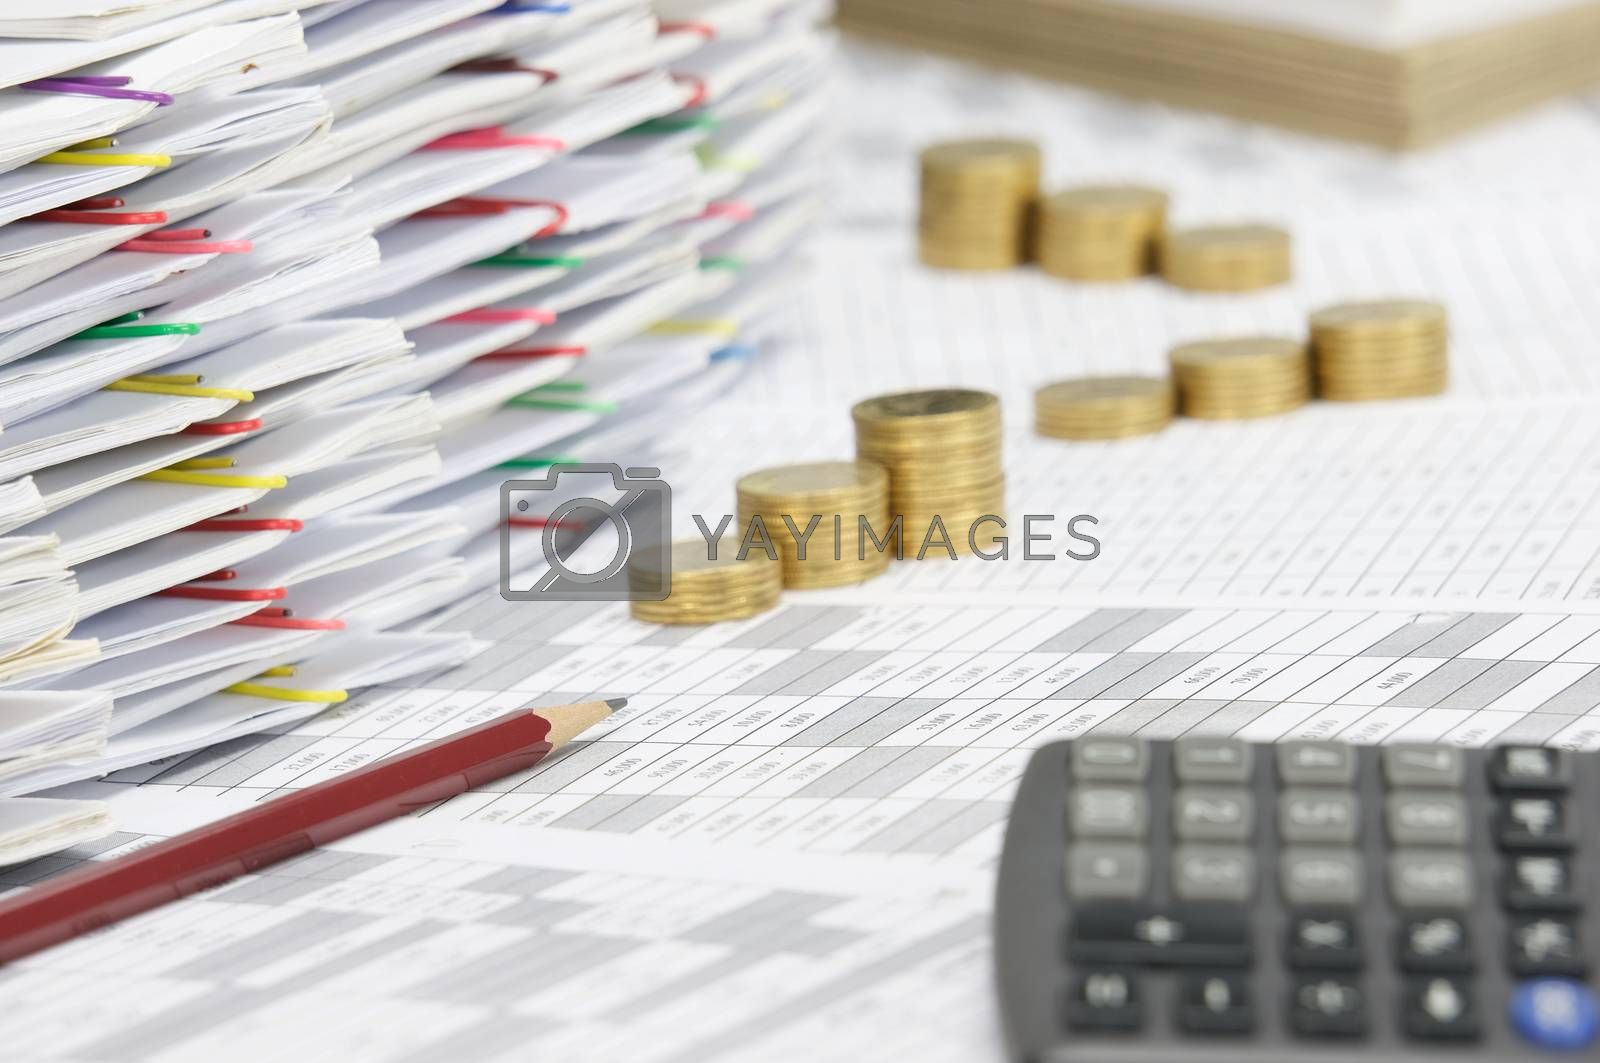 Royalty free image of Pencil have blur calculator and step pile of gold coins by eaglesky